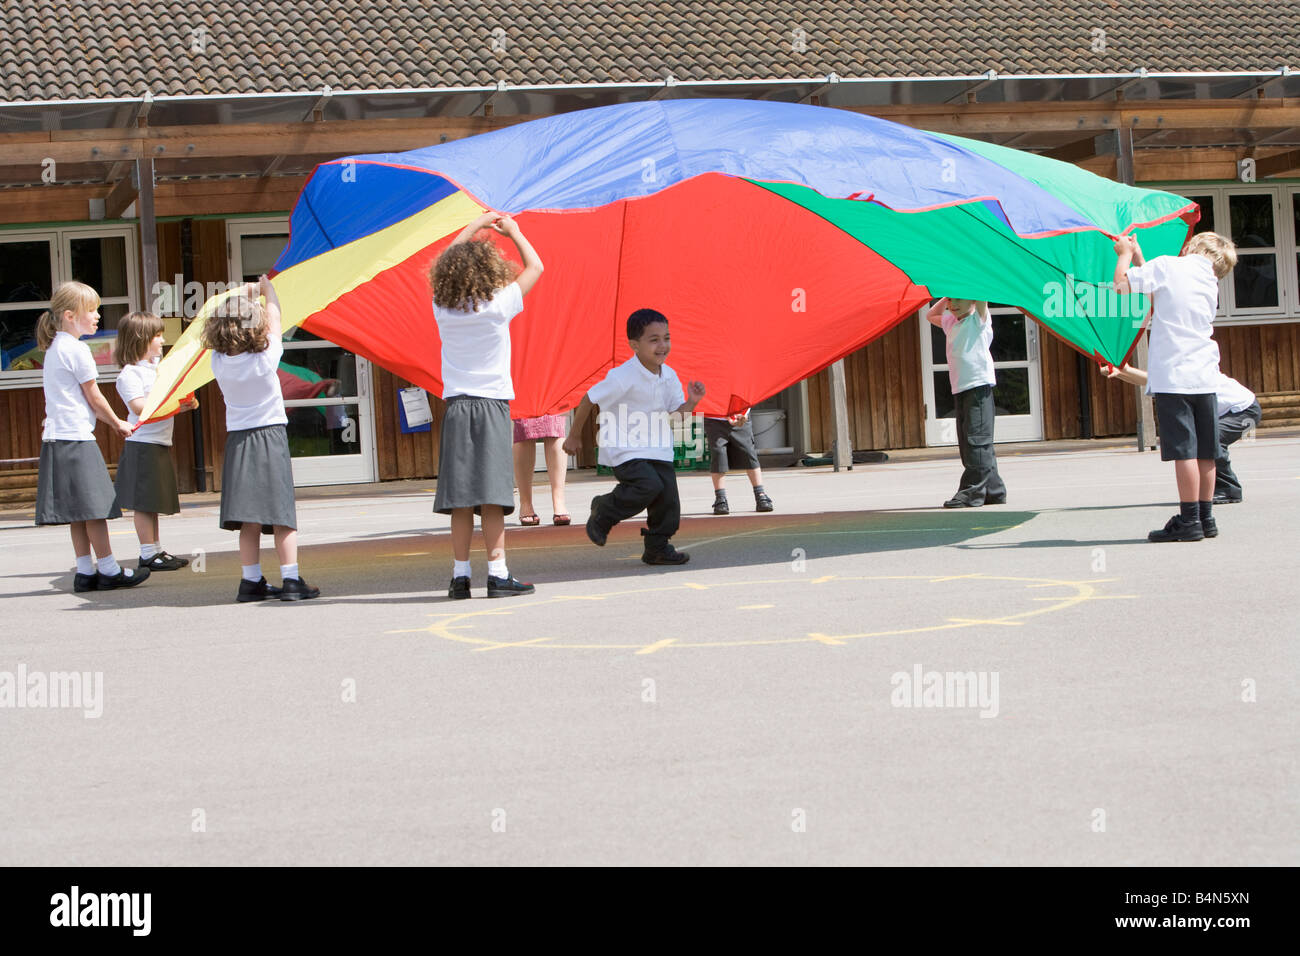 Students outdoors during recess playing with a parachute - Stock Image